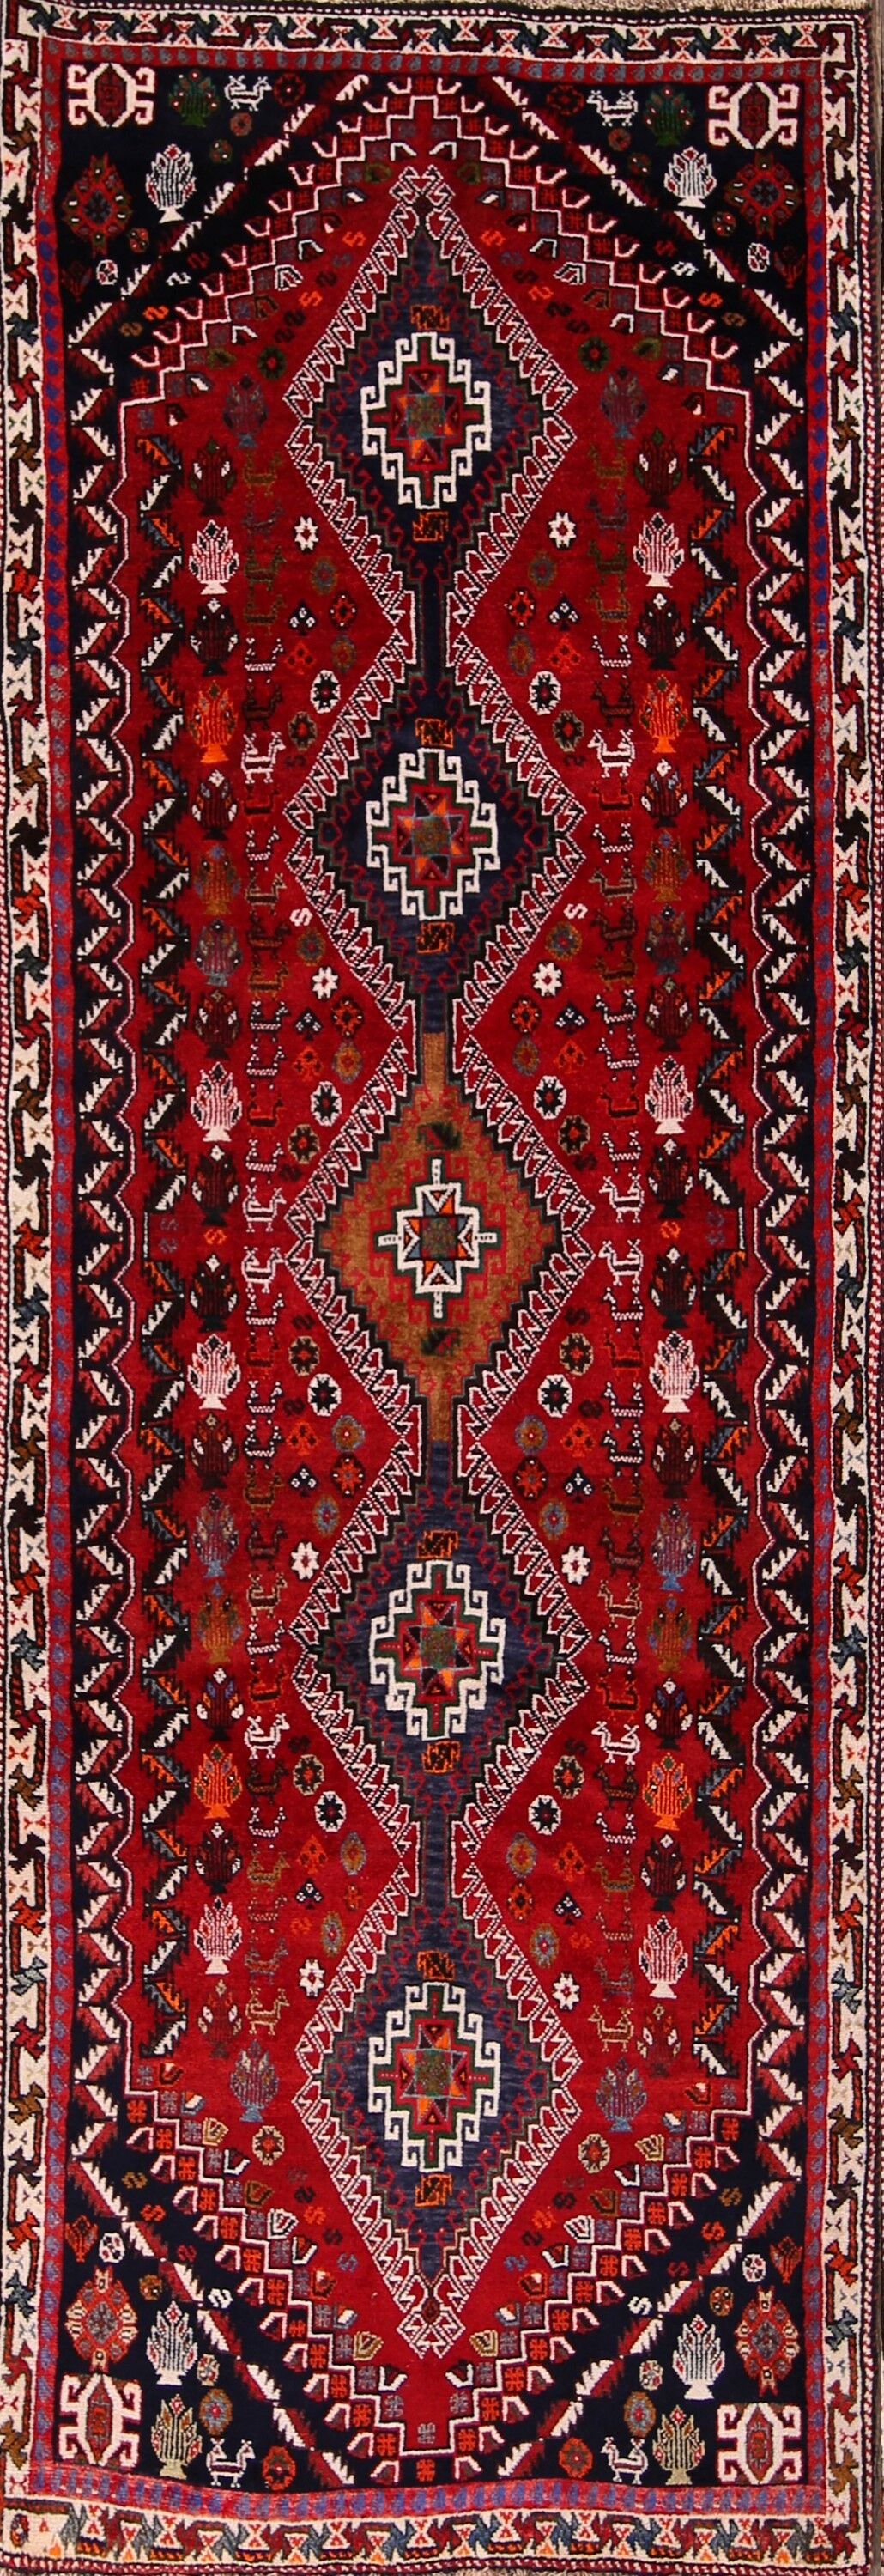 One-of-a-Kind Classical Abadeh Traditional Nafar Persian Hand-Knotted 3'4